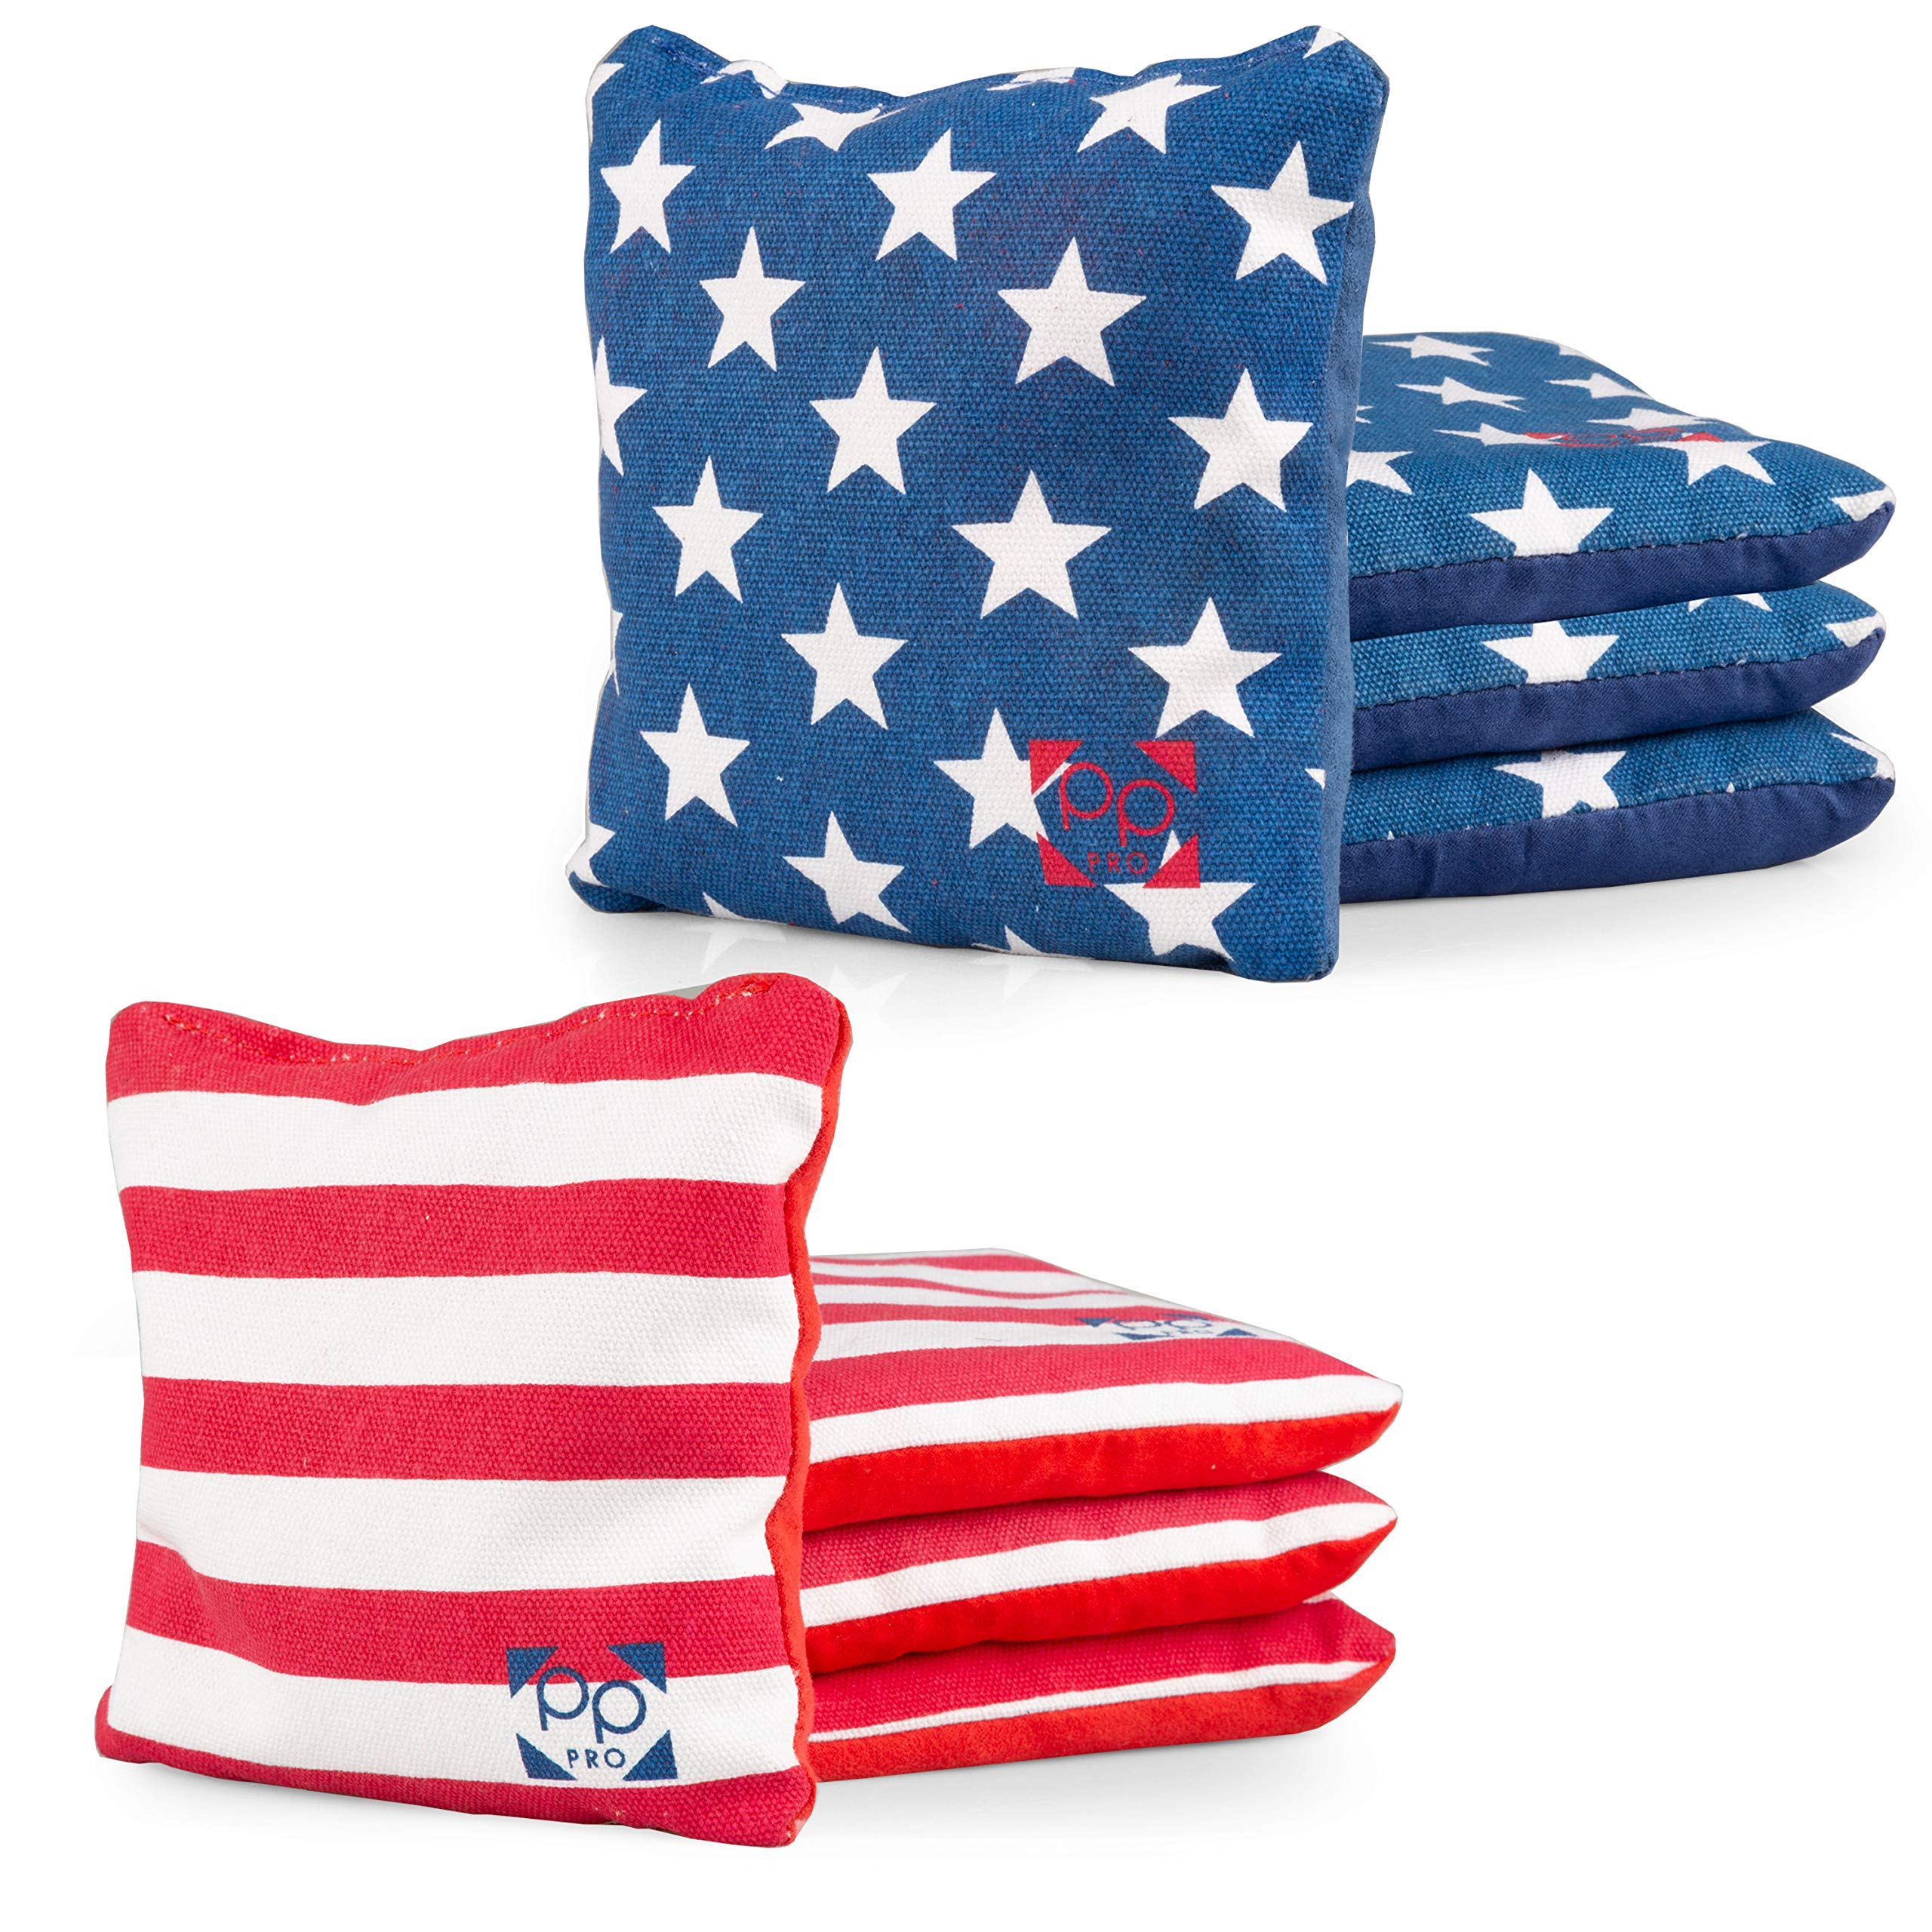 Professional Cornhole Bags - Set of 8 Regulation All Weather Two Sided American Flag Bean Bags for Pro Corn Hole Game - 4 Stars & 4 Stripes by Play Platoon